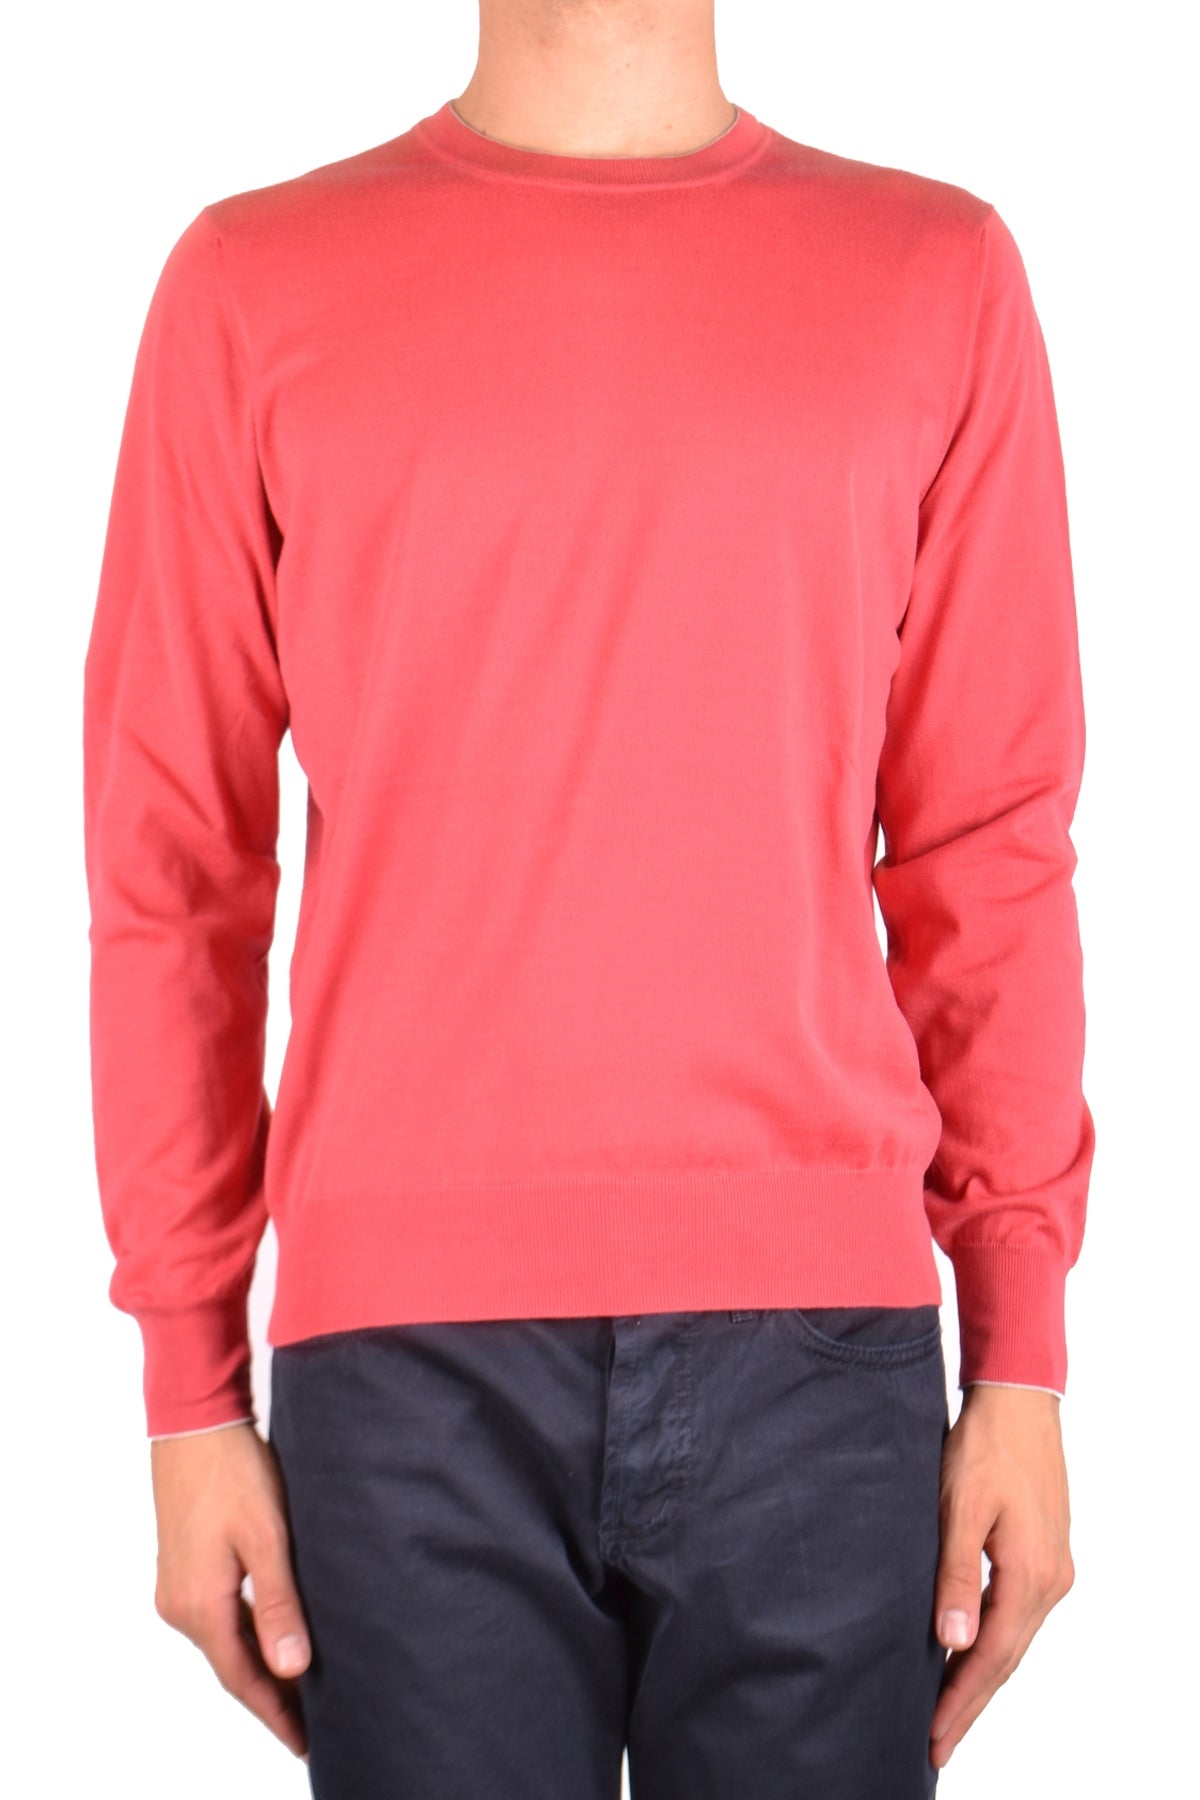 Sweater Brunello Cucinelli-Sweater - MAN-48-Product Details Terms: New With LabelYear: 2018Main Color: RedGender: ManMade In: ItalyManufacturer Part Number: M2900100Size: ItSeason: Spring / SummerClothing Type: Sweater Composition: Cotton 100%-Keyomi-Sook